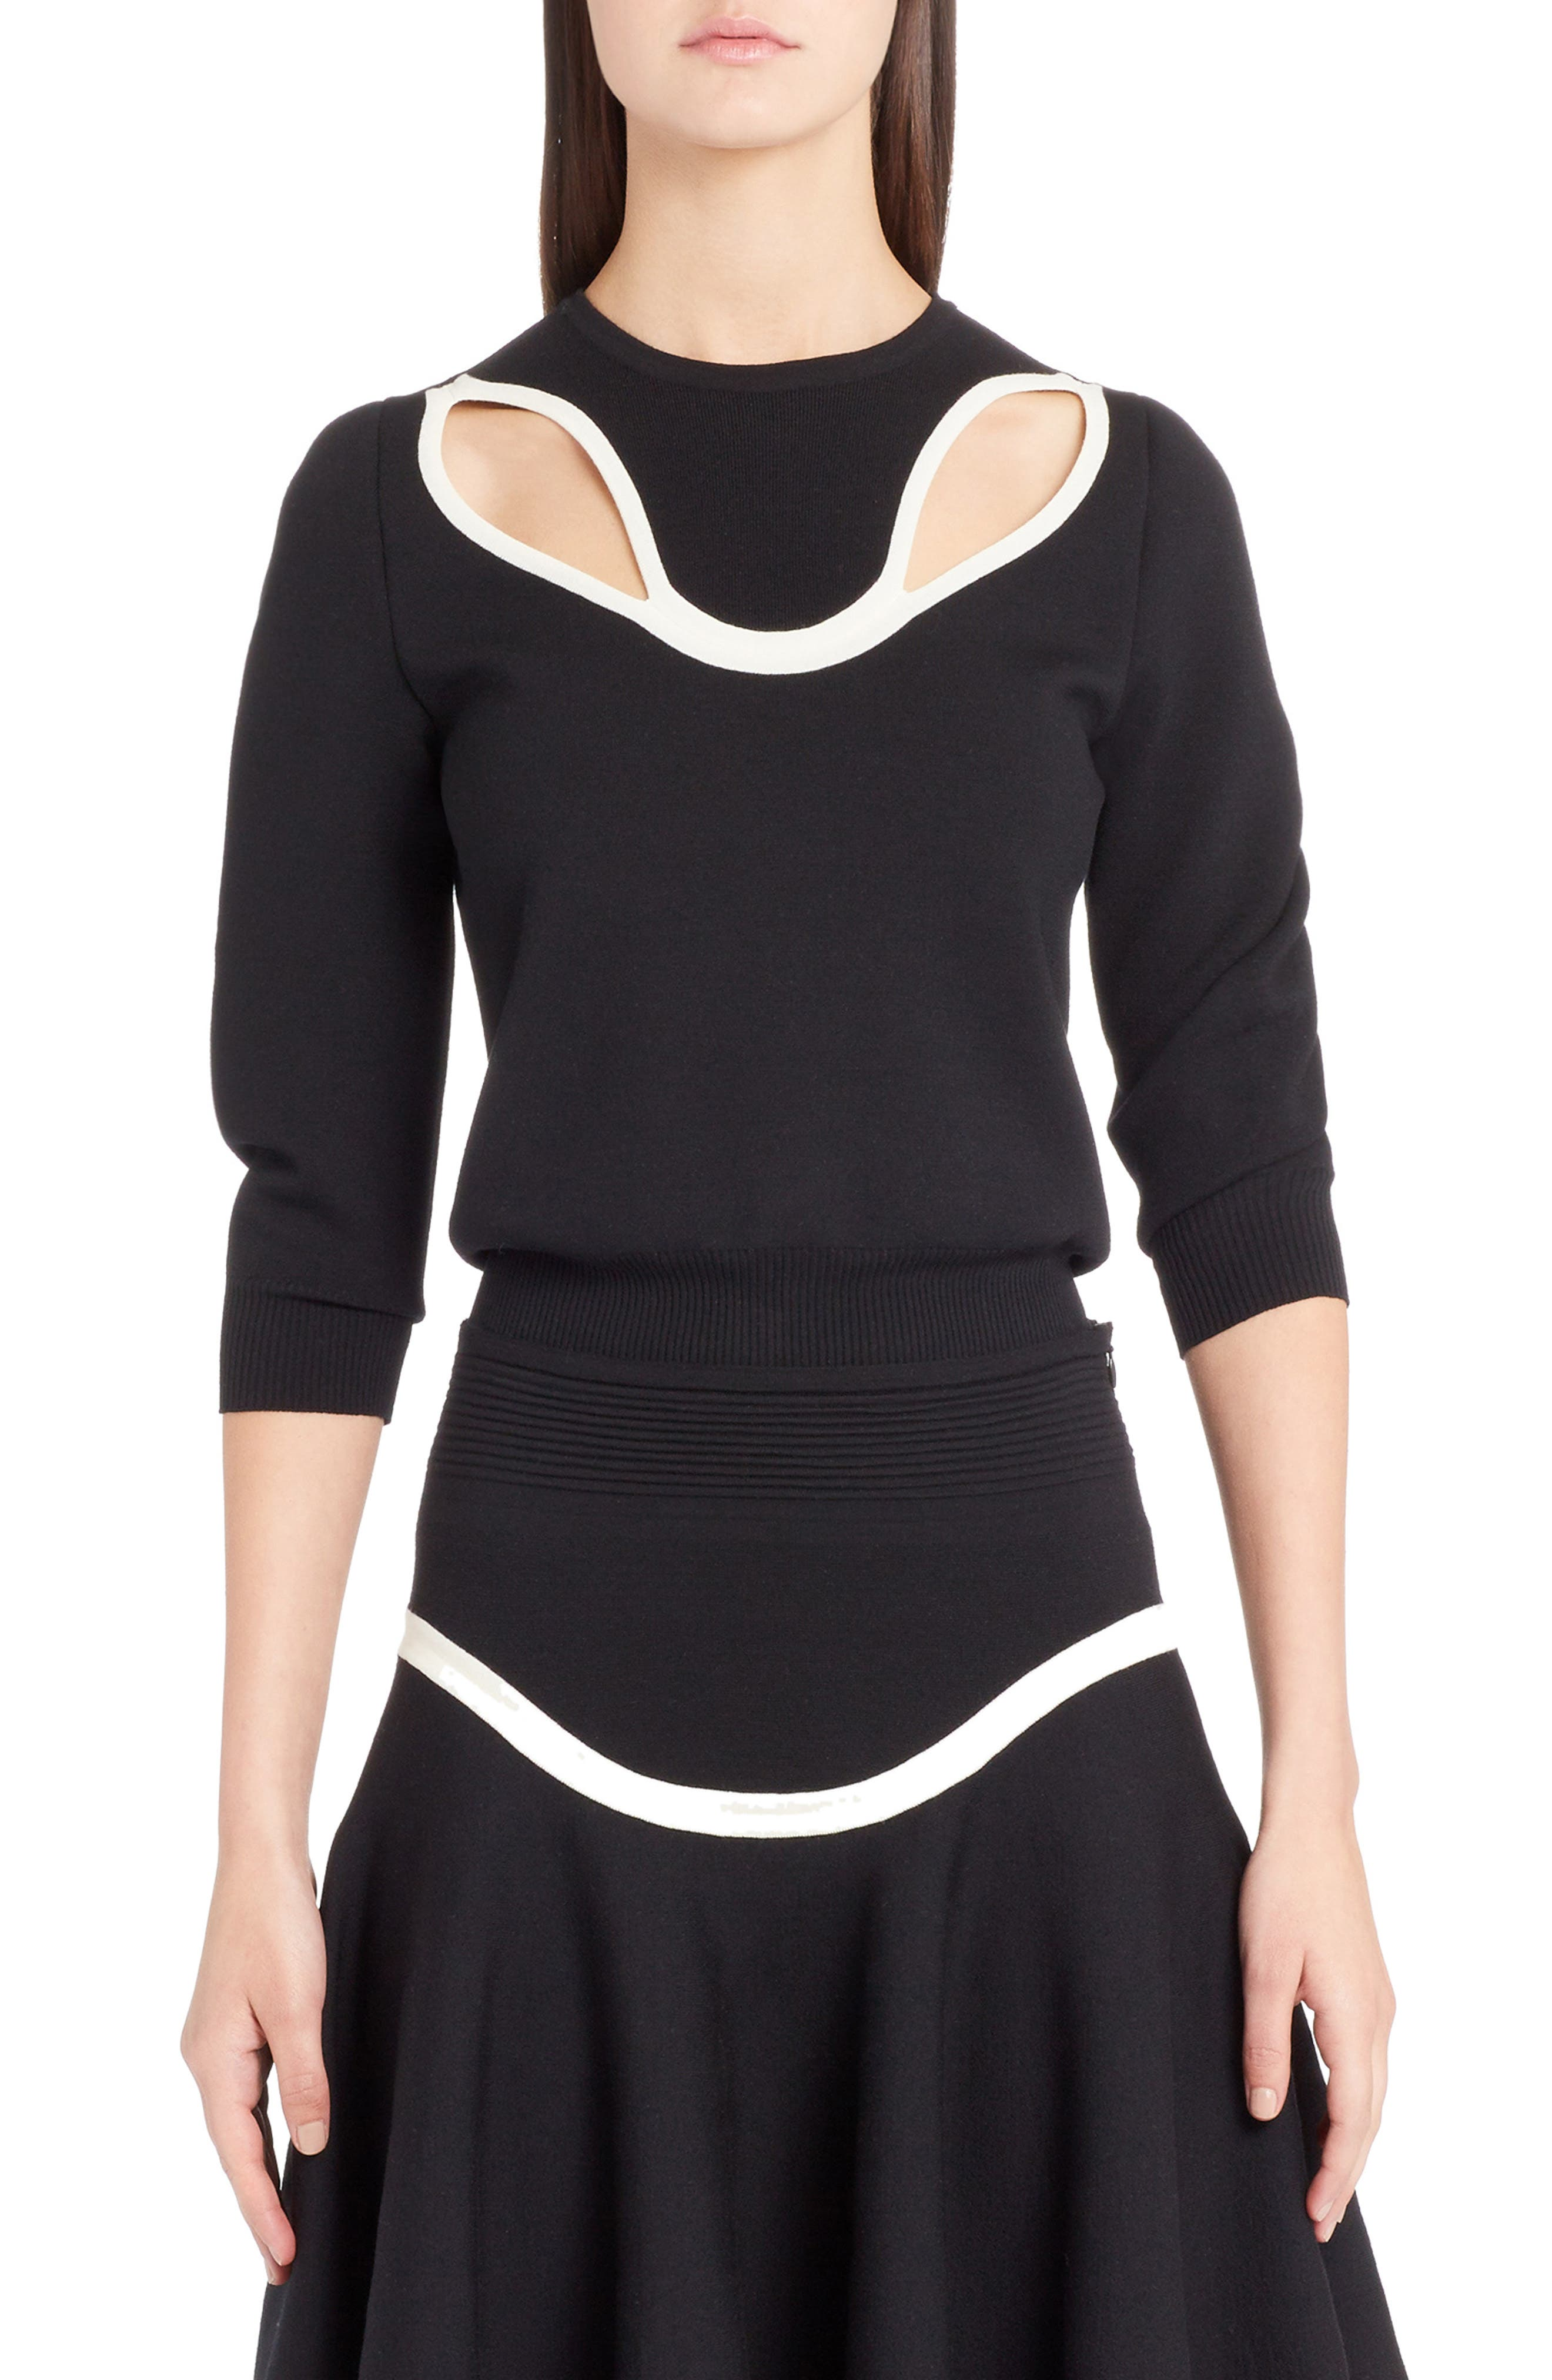 Graphic Cutout Sweater,                         Main,                         color, BLACK/ IVORY